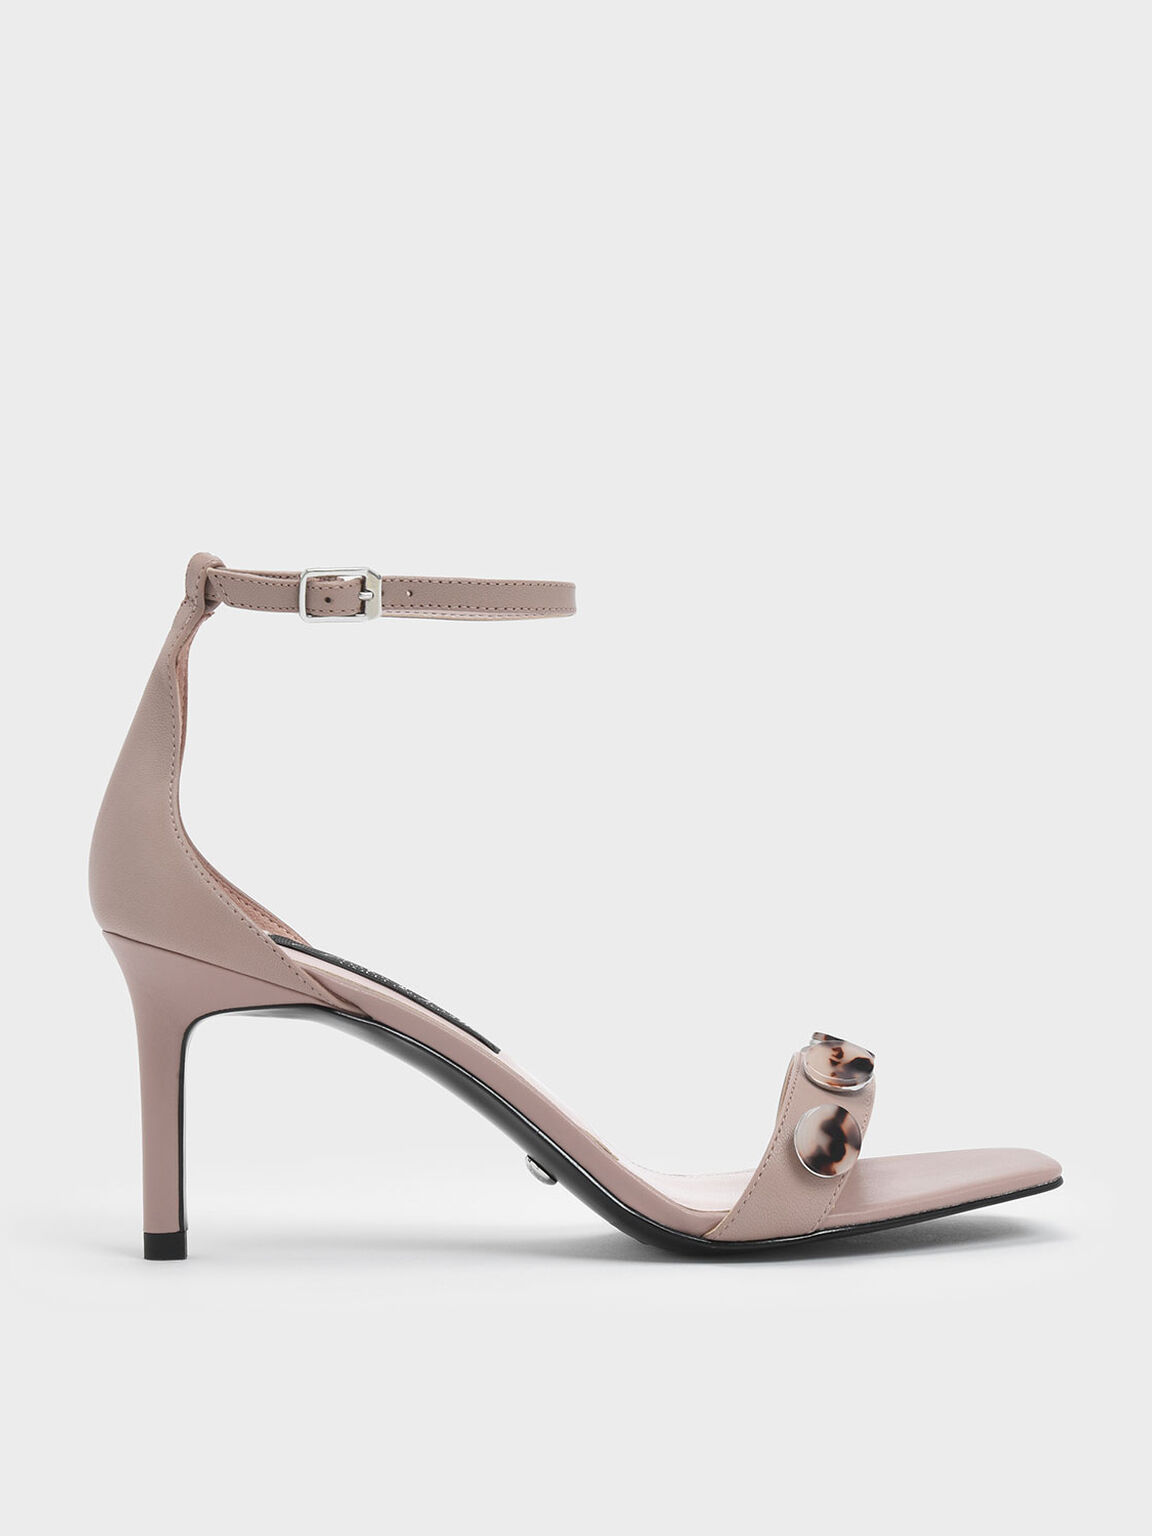 Tortoiseshell Button Detail Leather Stiletto Sandals, Mauve, hi-res